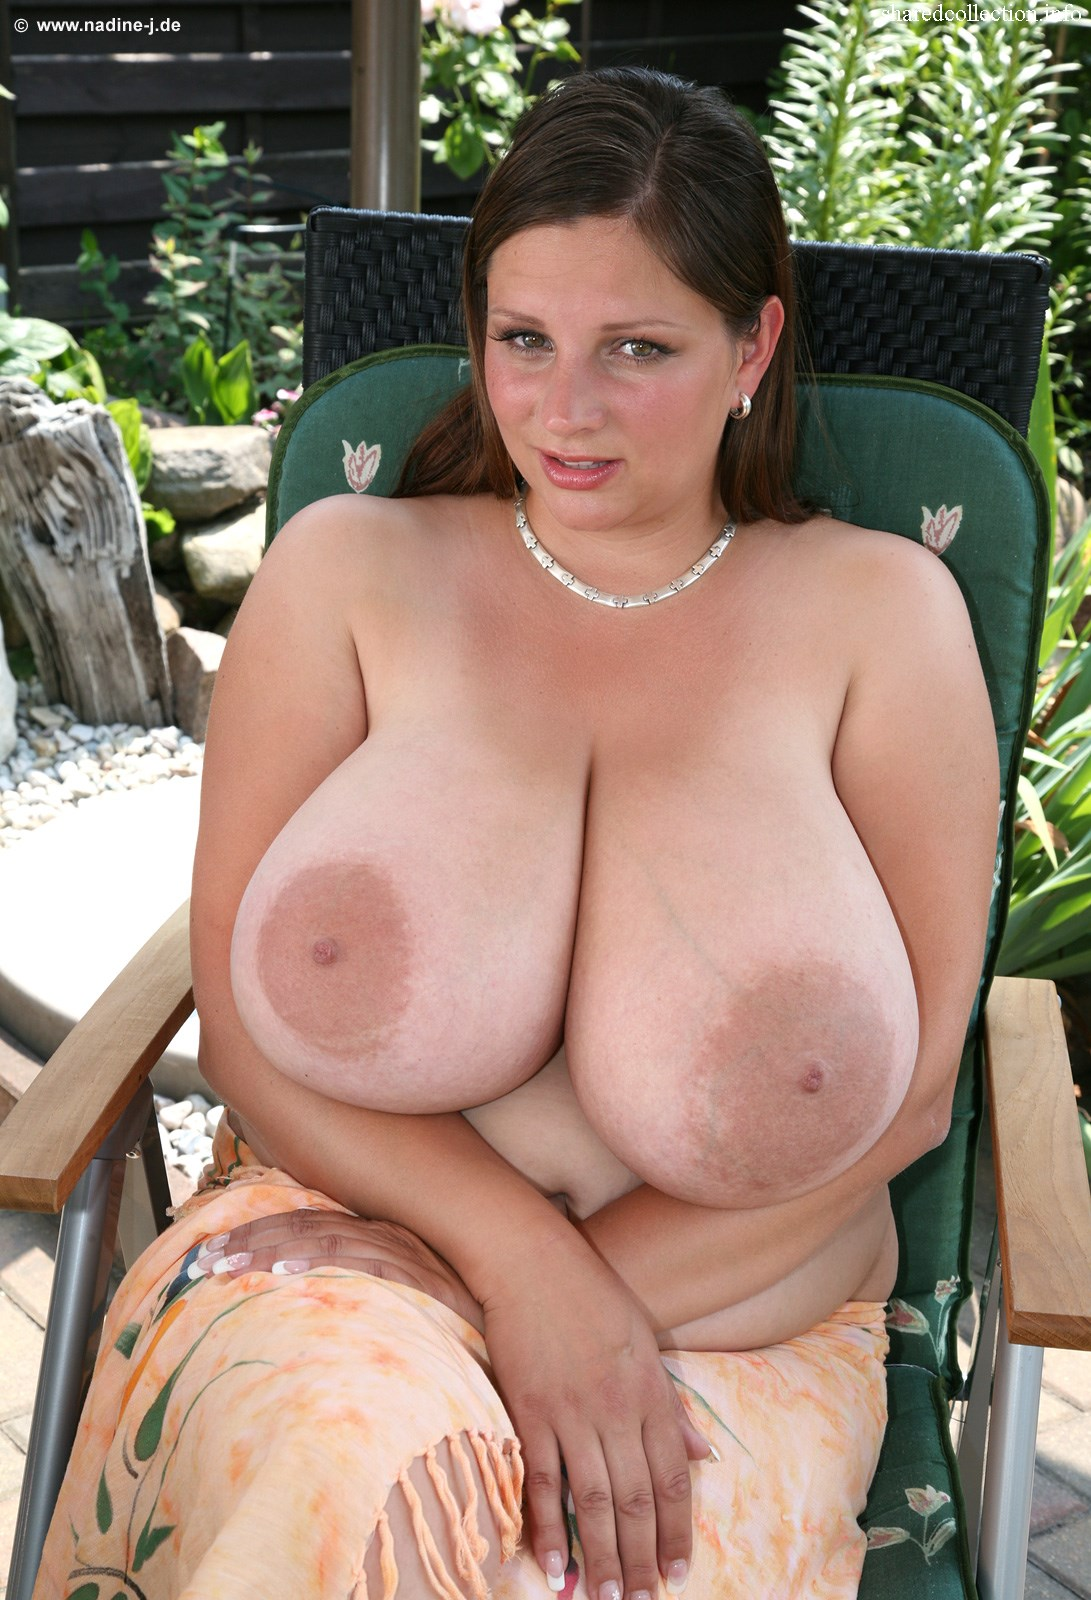 Very large natural breasts